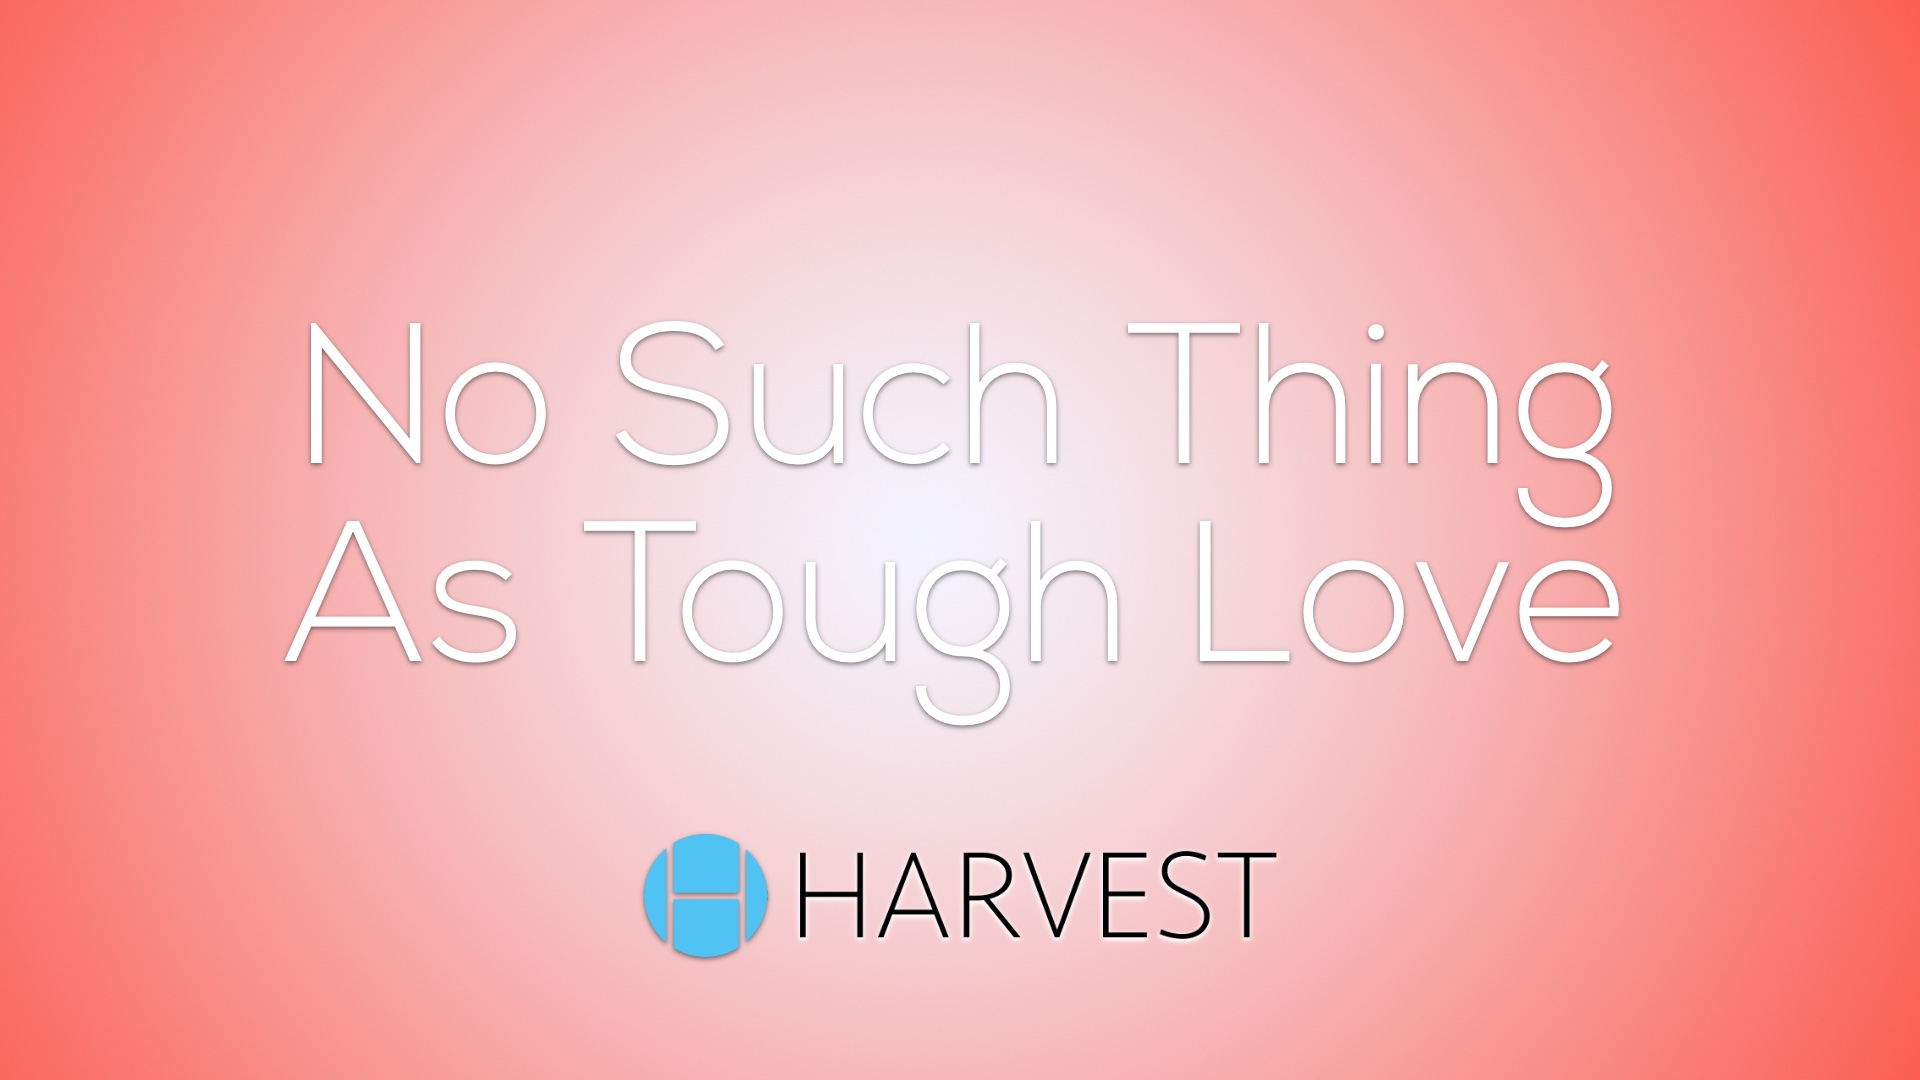 No Such Thing As Tough Love